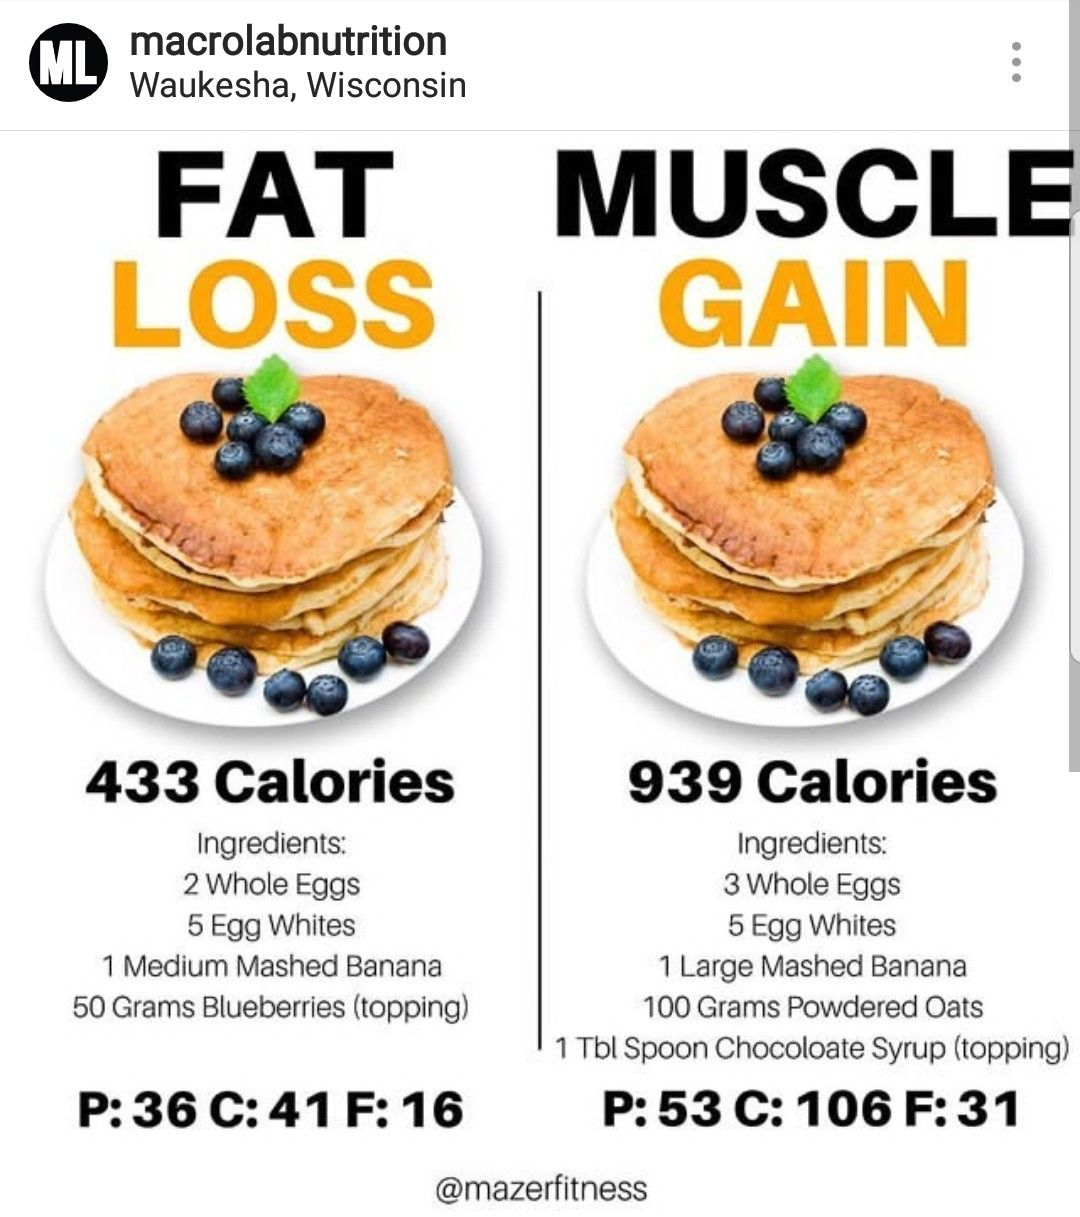 Nutrition for weight loss and muscle gain